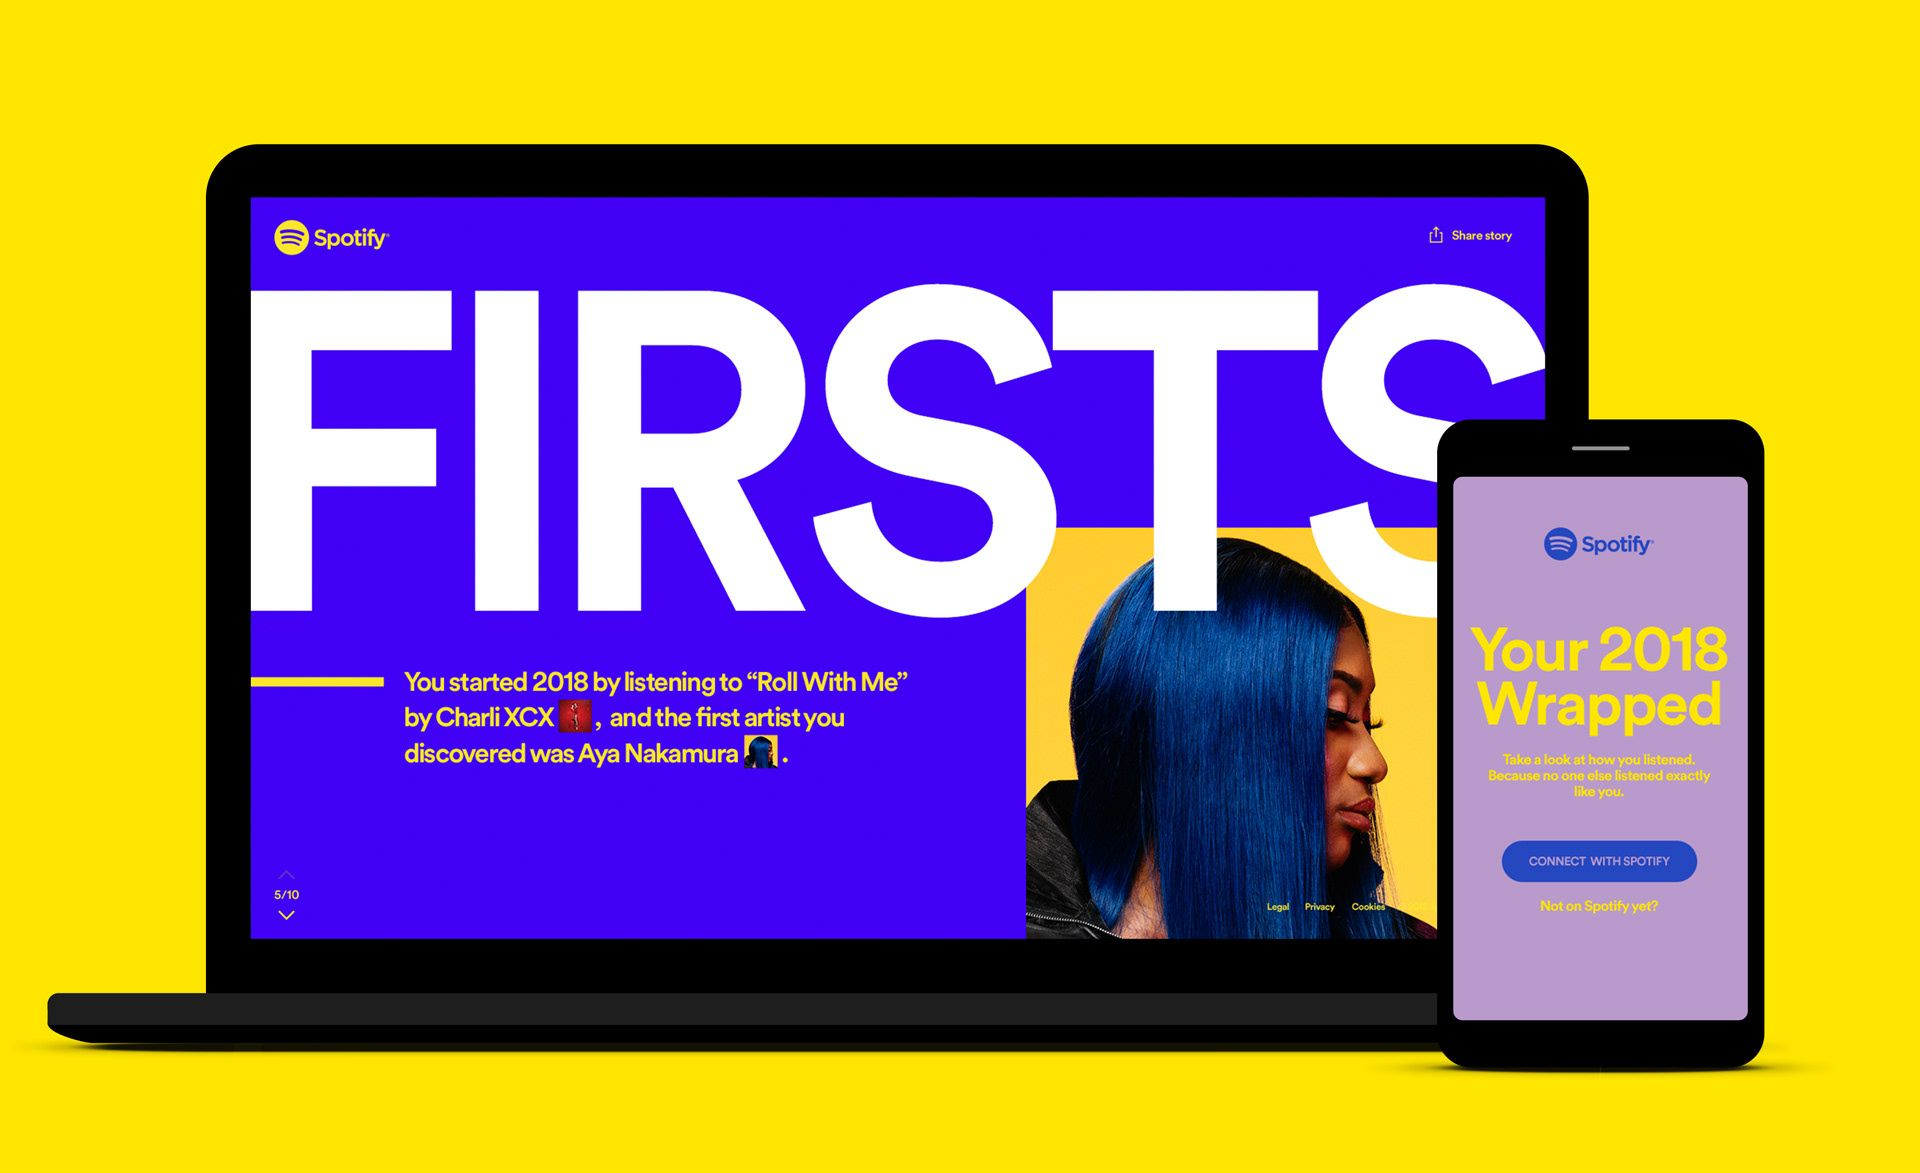 spotify wrapped 2019, 2019 spotify wrapped on app for